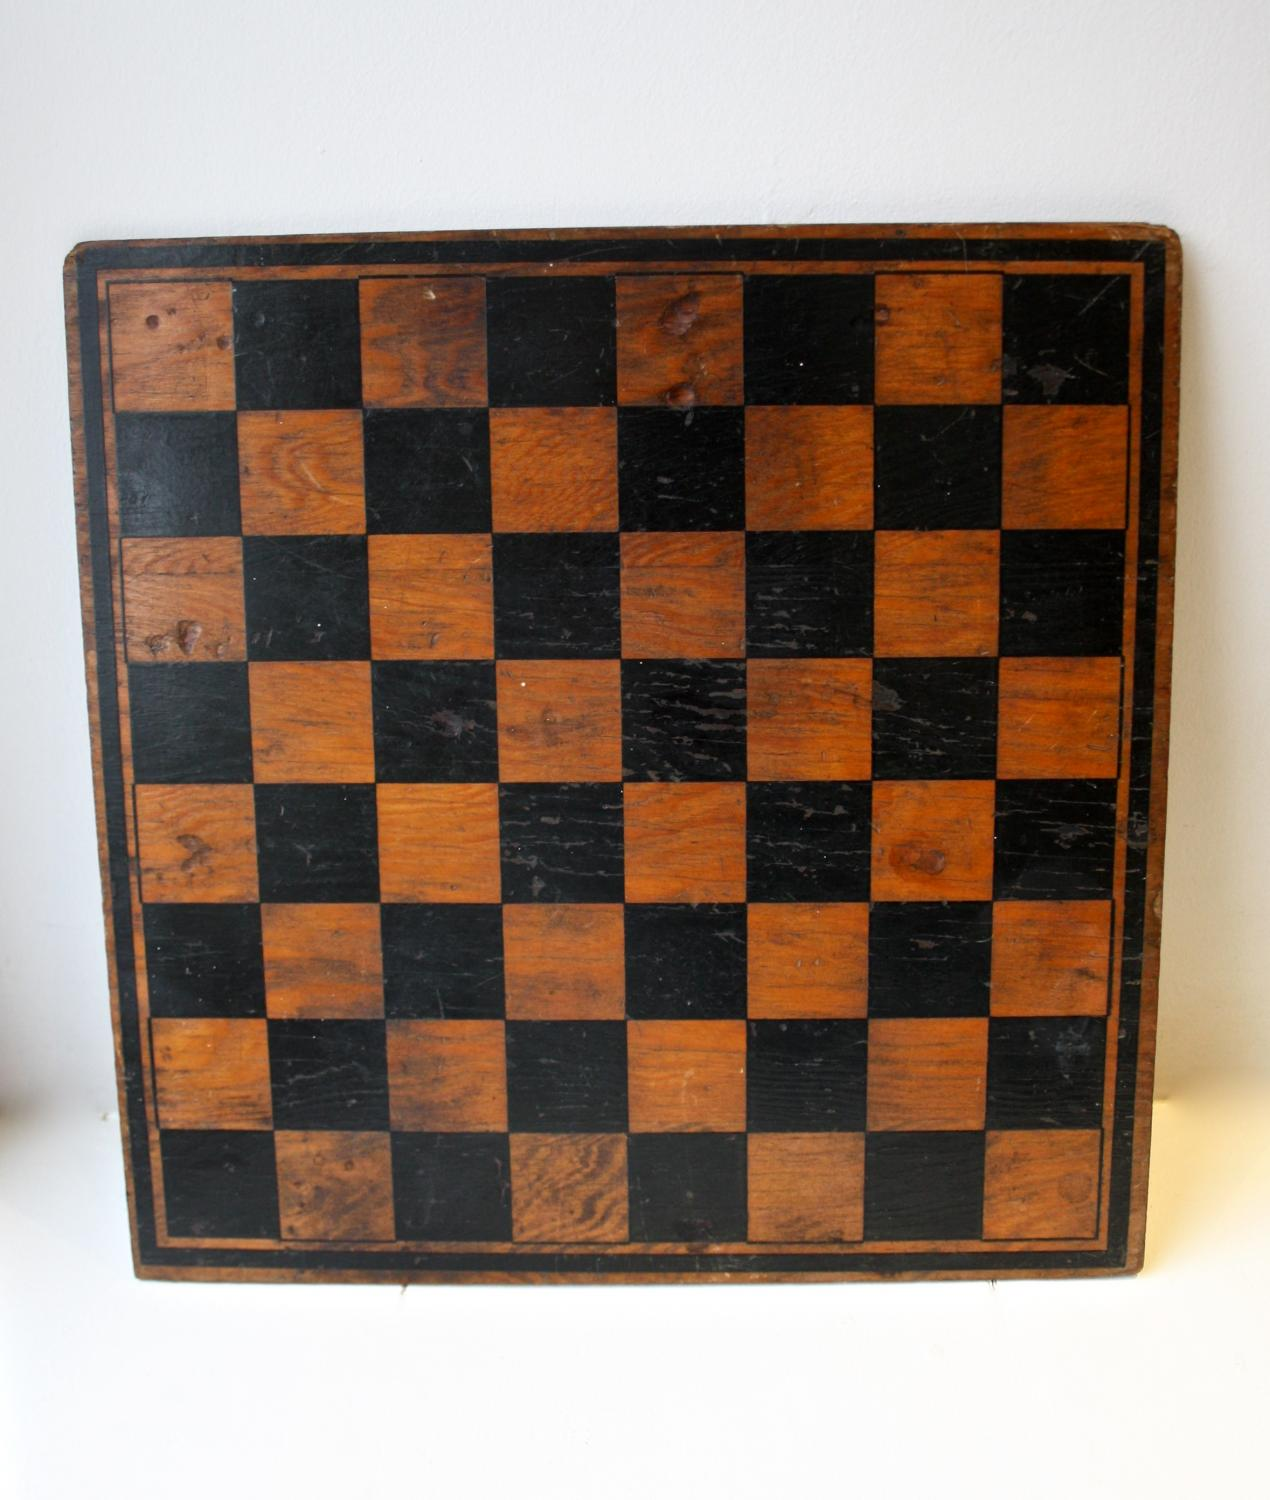 Wooden chess/draughts board